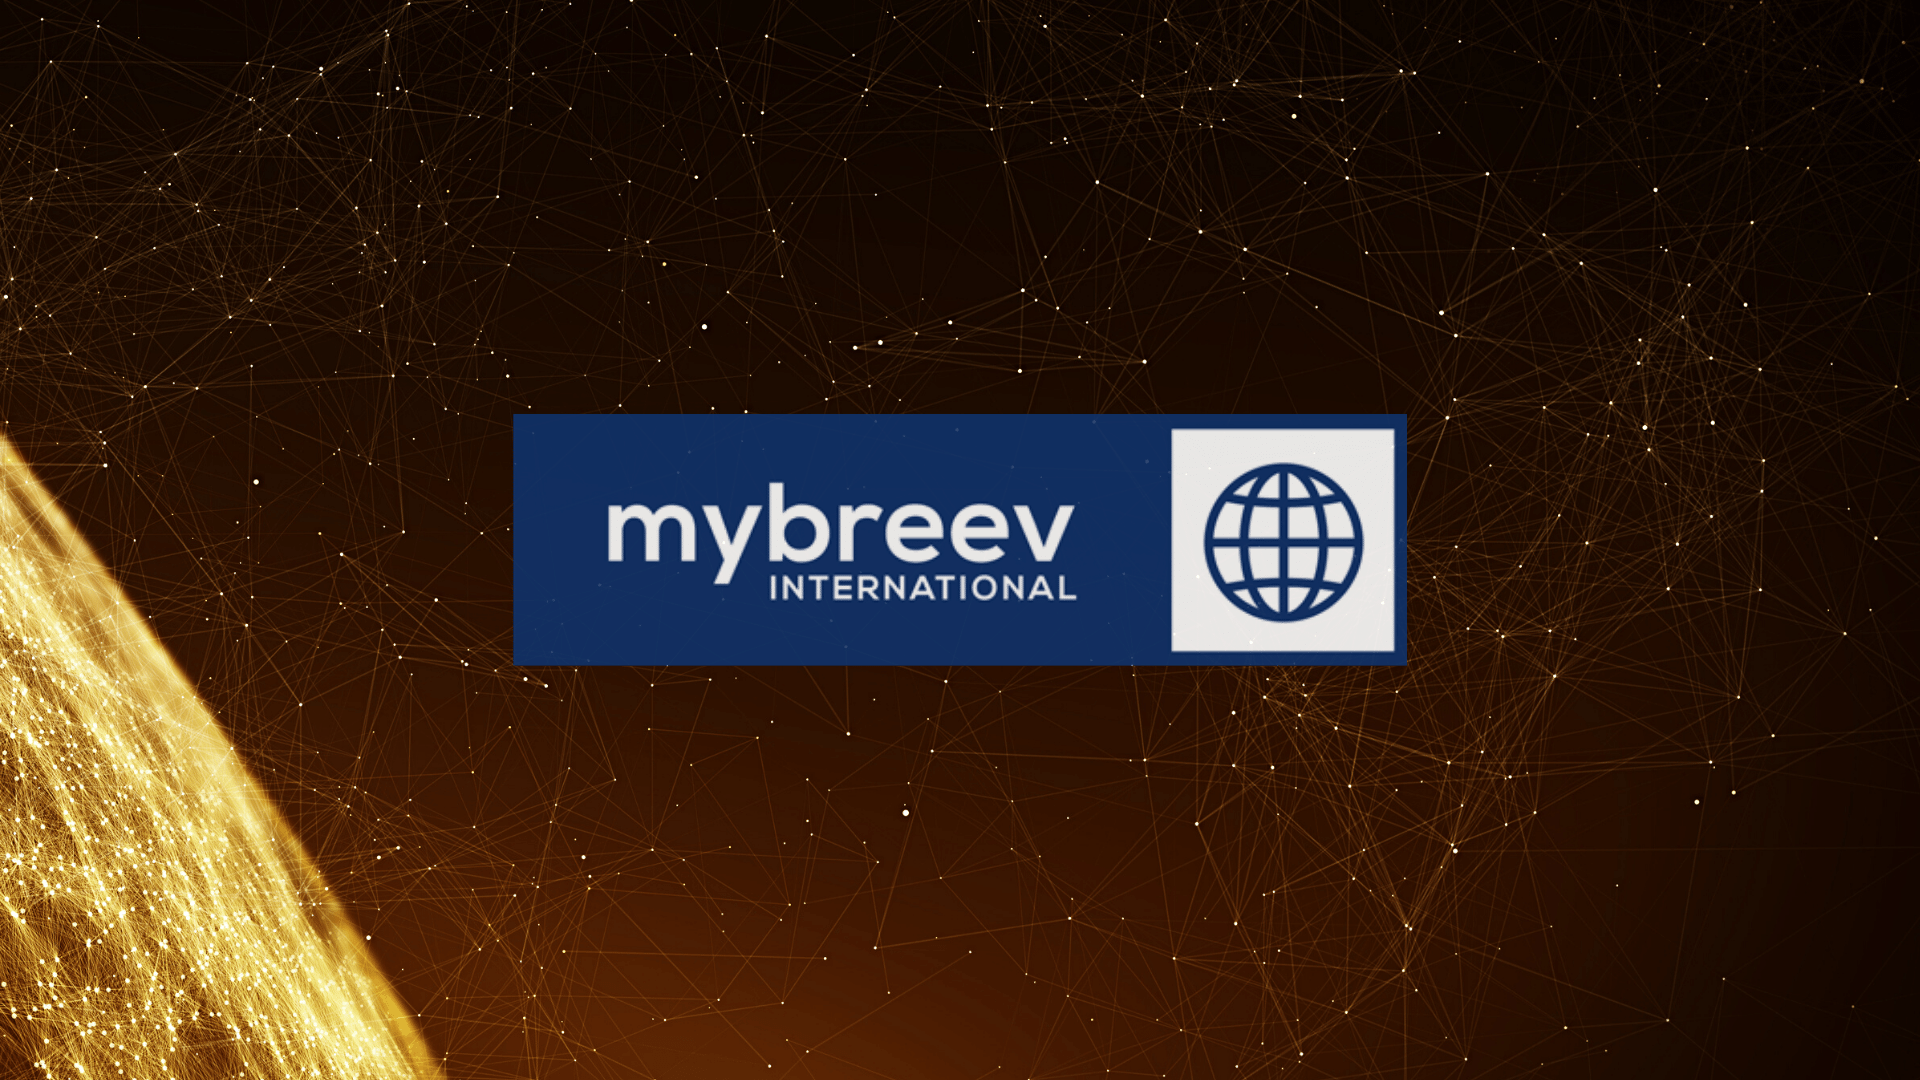 mybreev International Partner & Broker Program